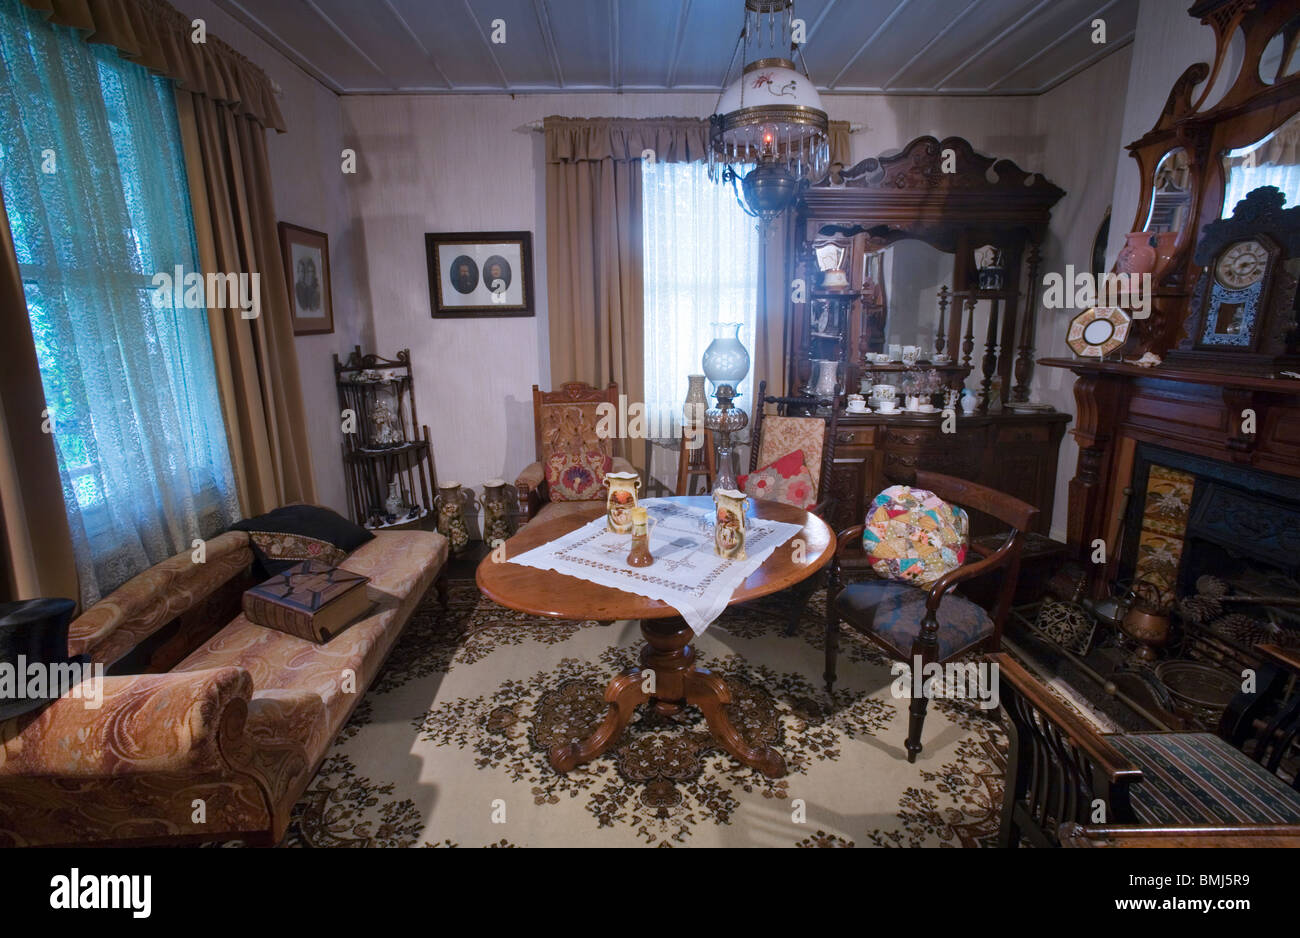 A Nineteenth Xix Century 1800s Living Room With